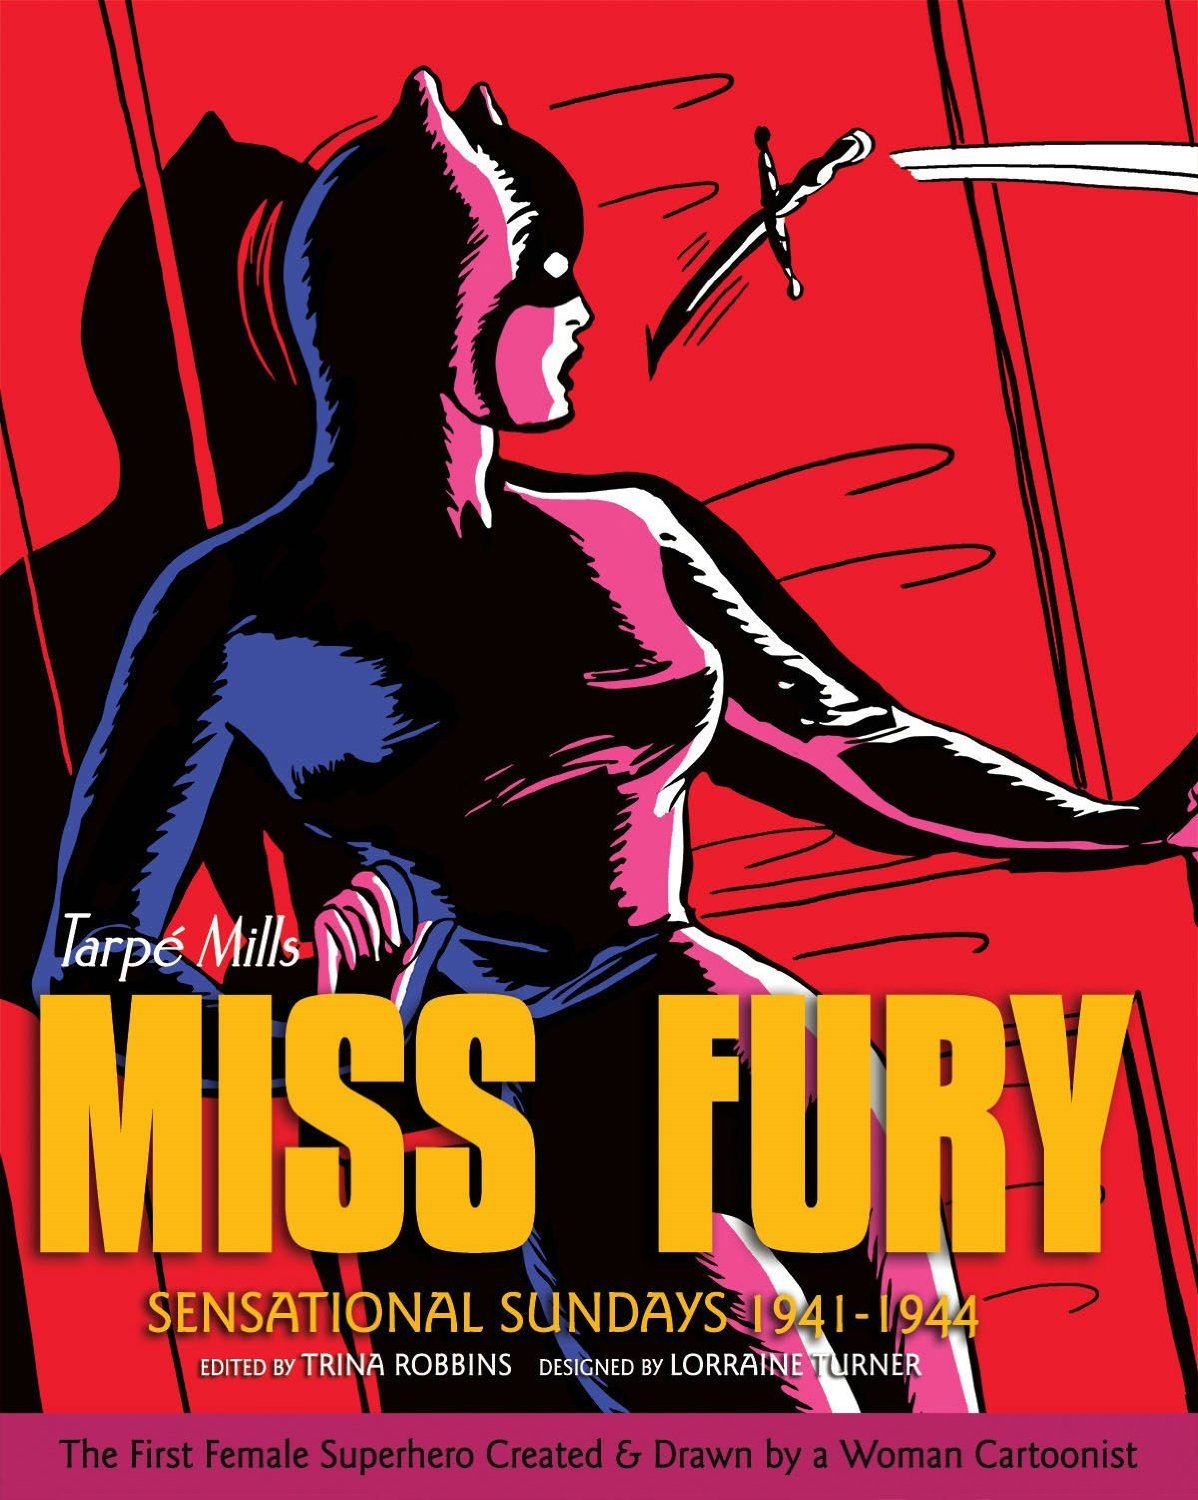 Miss-fury-anthology-vaolume-2